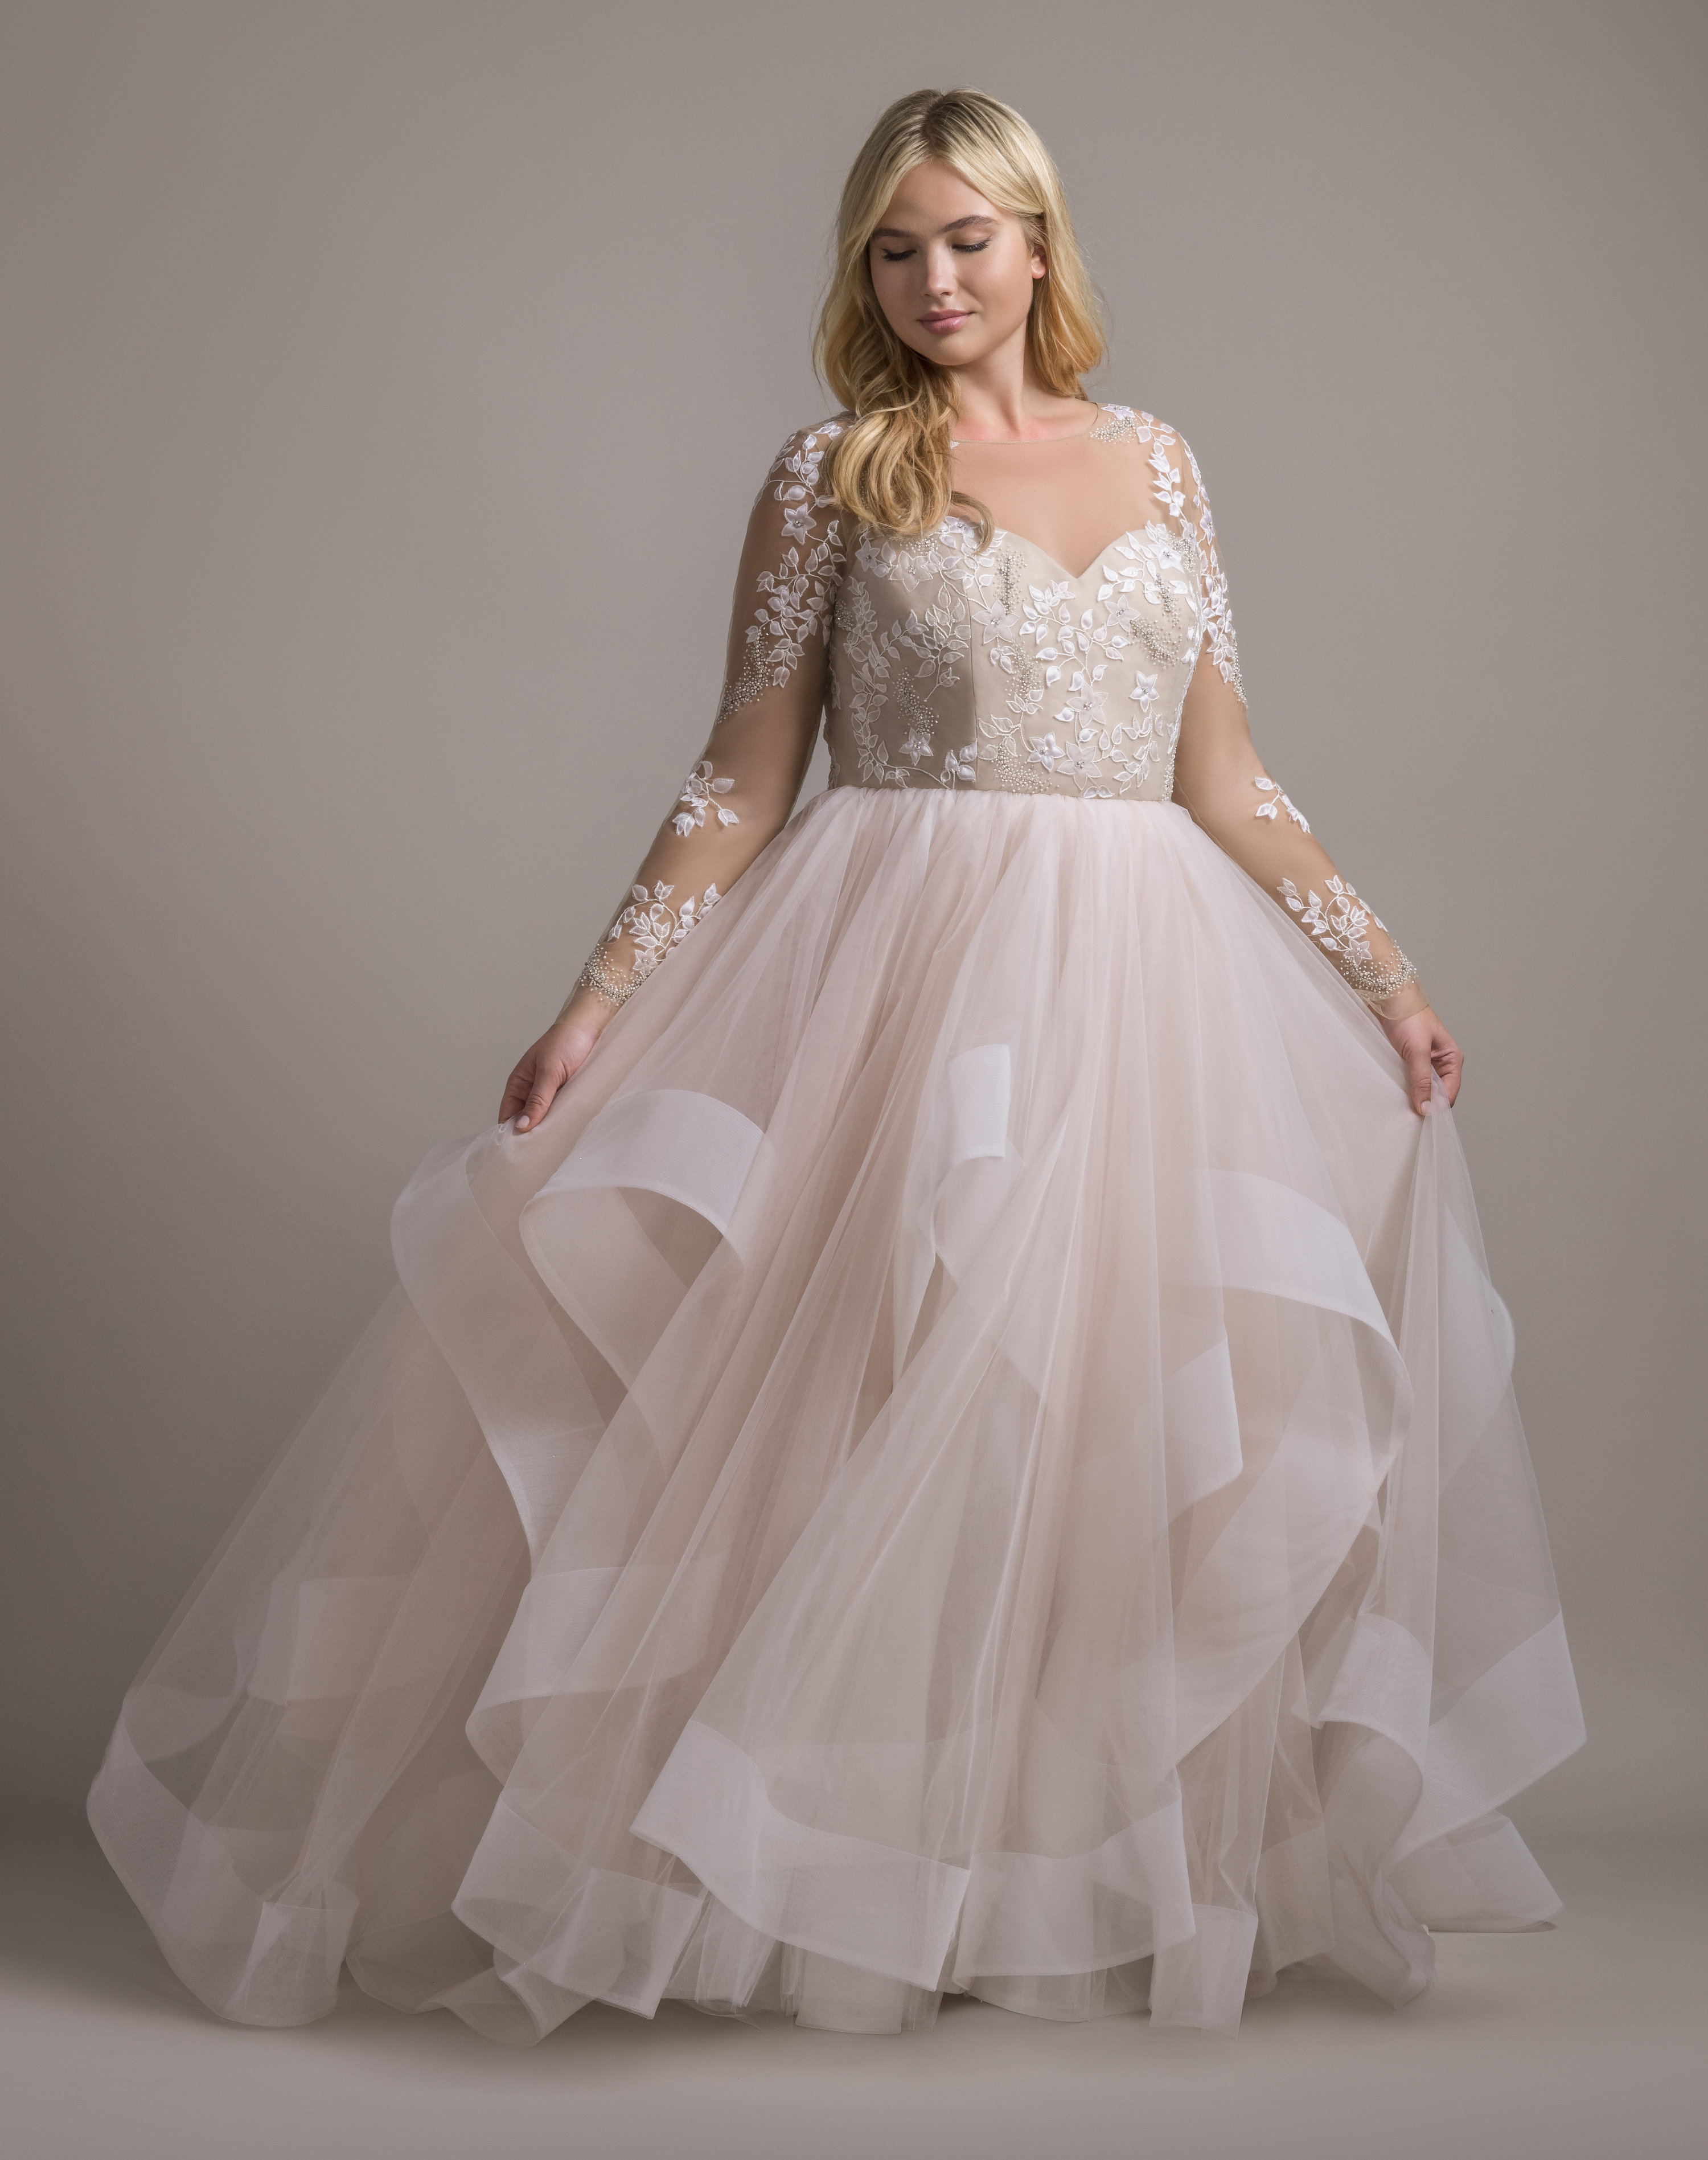 Bridal Gowns And Wedding Dresses By Jlm Couture Style 6920 Lorelei